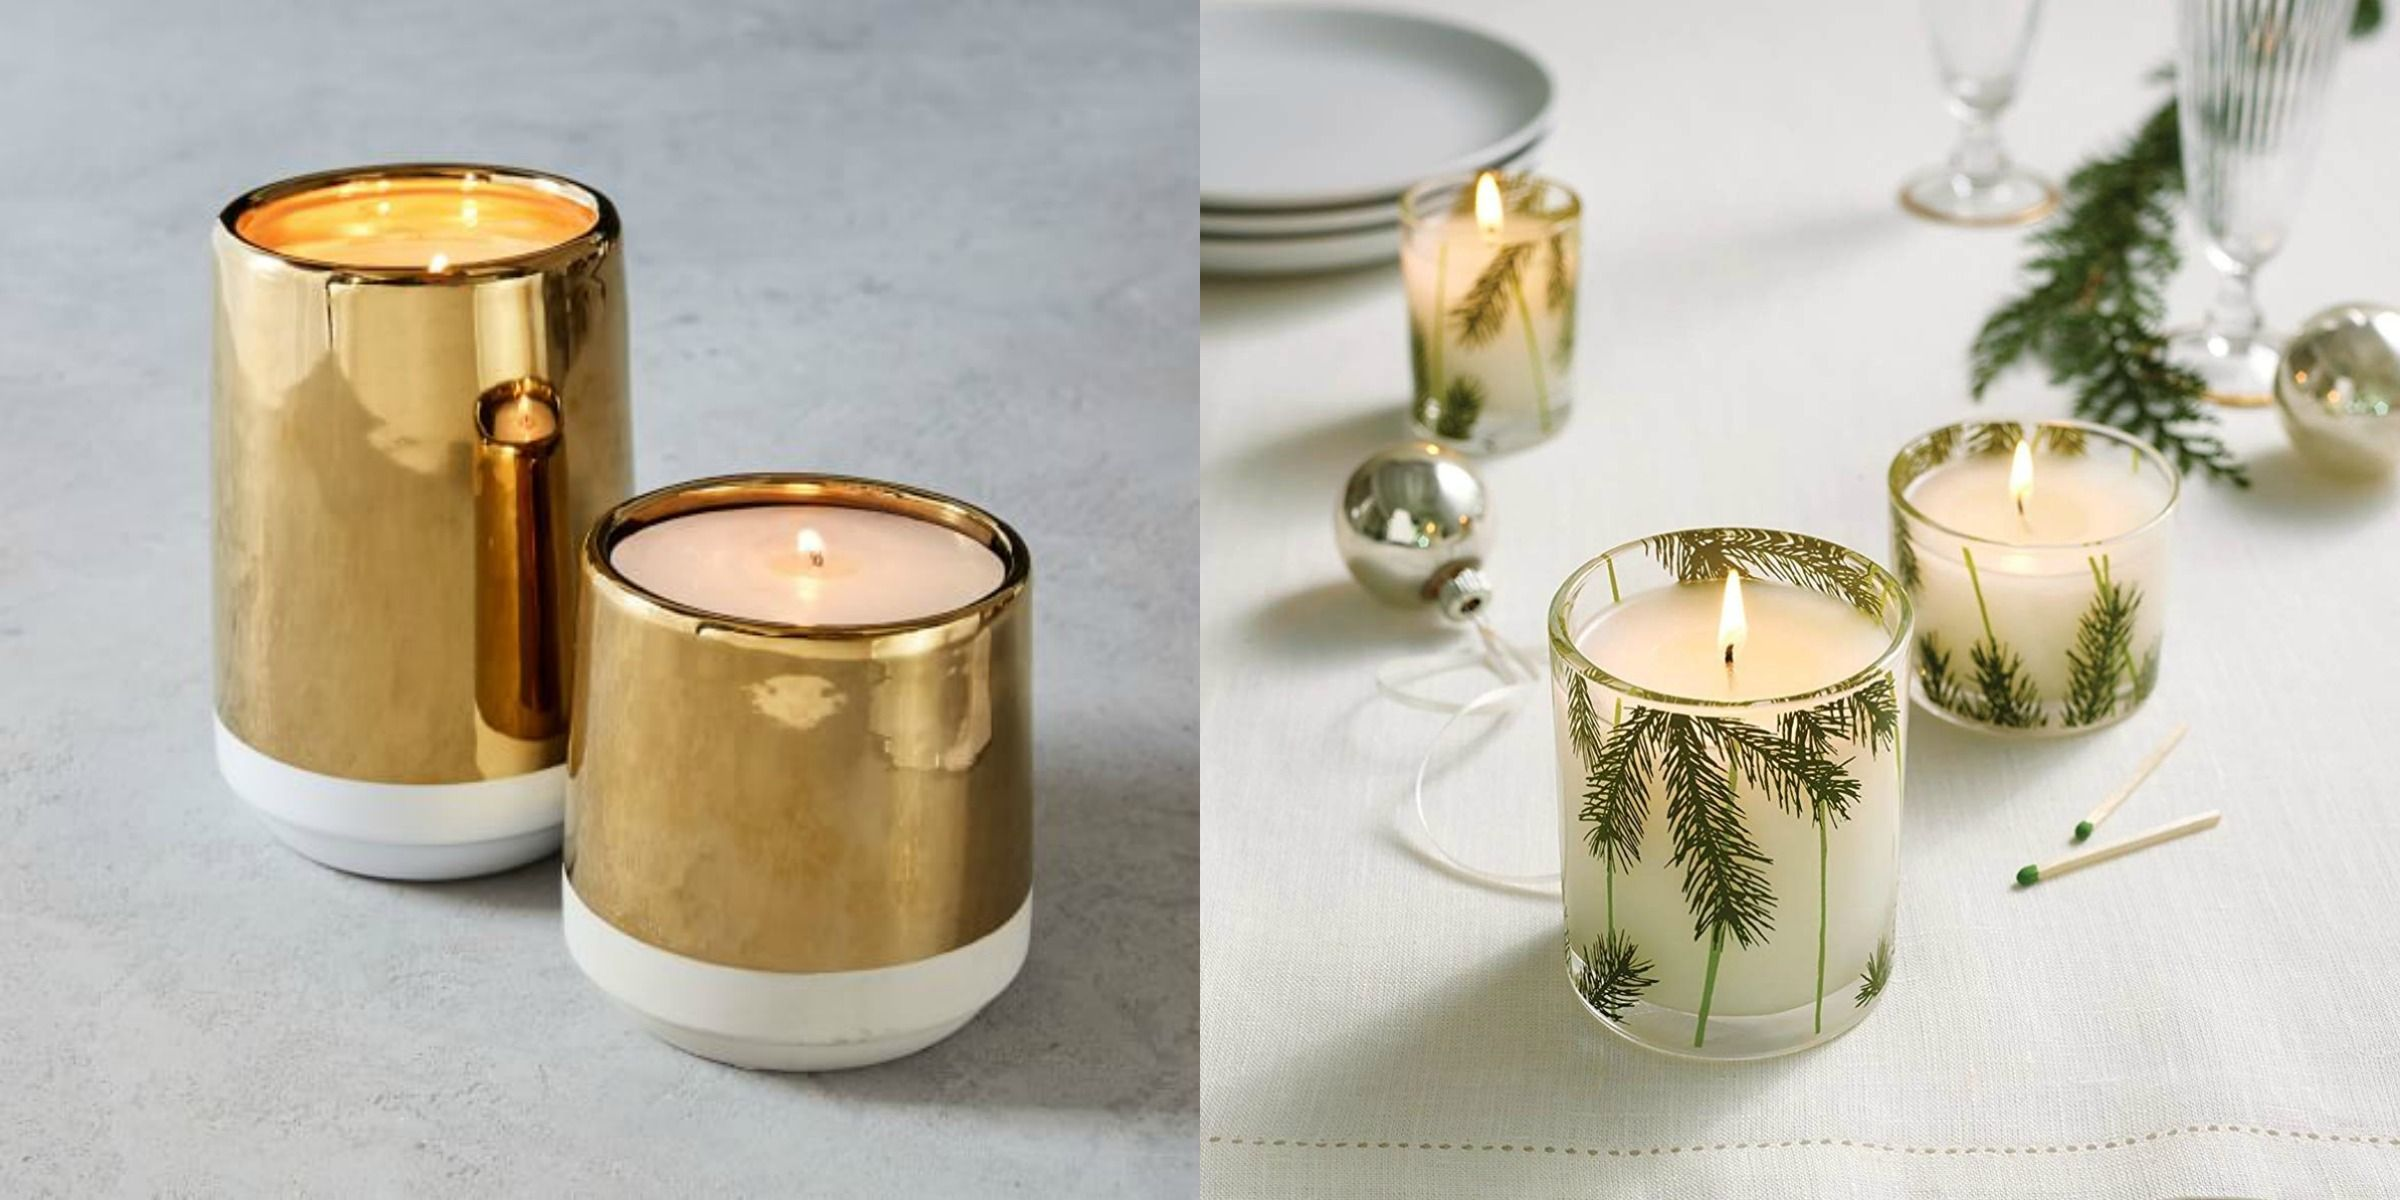 21 Best Christmas Candles 2020 Best Holiday Scented Candles